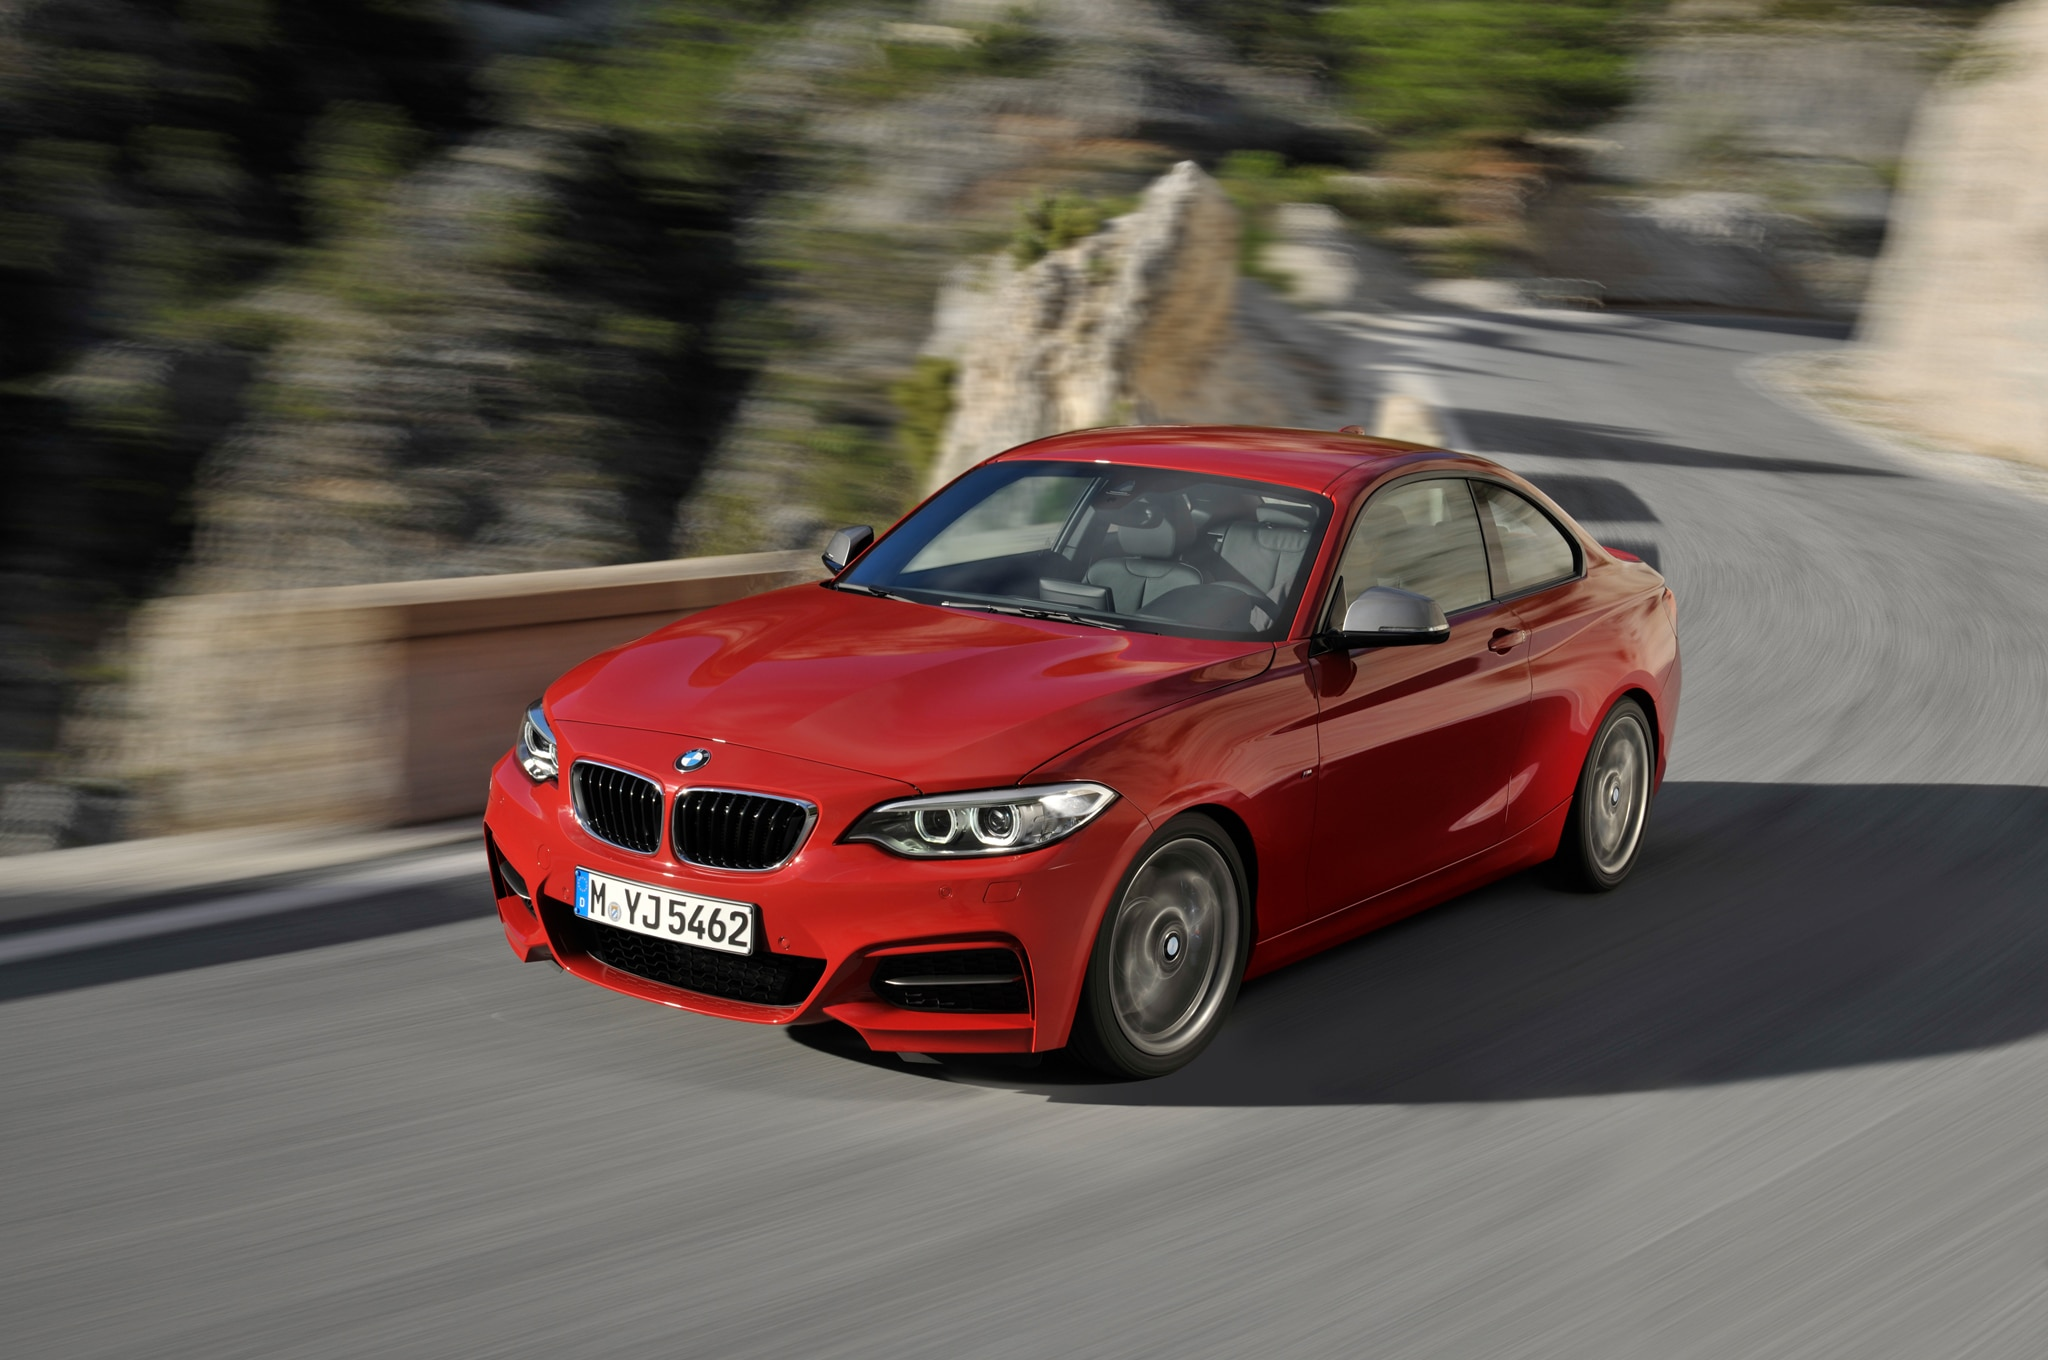 2014 bmw 2 series coupe first look automobile magazine 317 sciox Choice Image